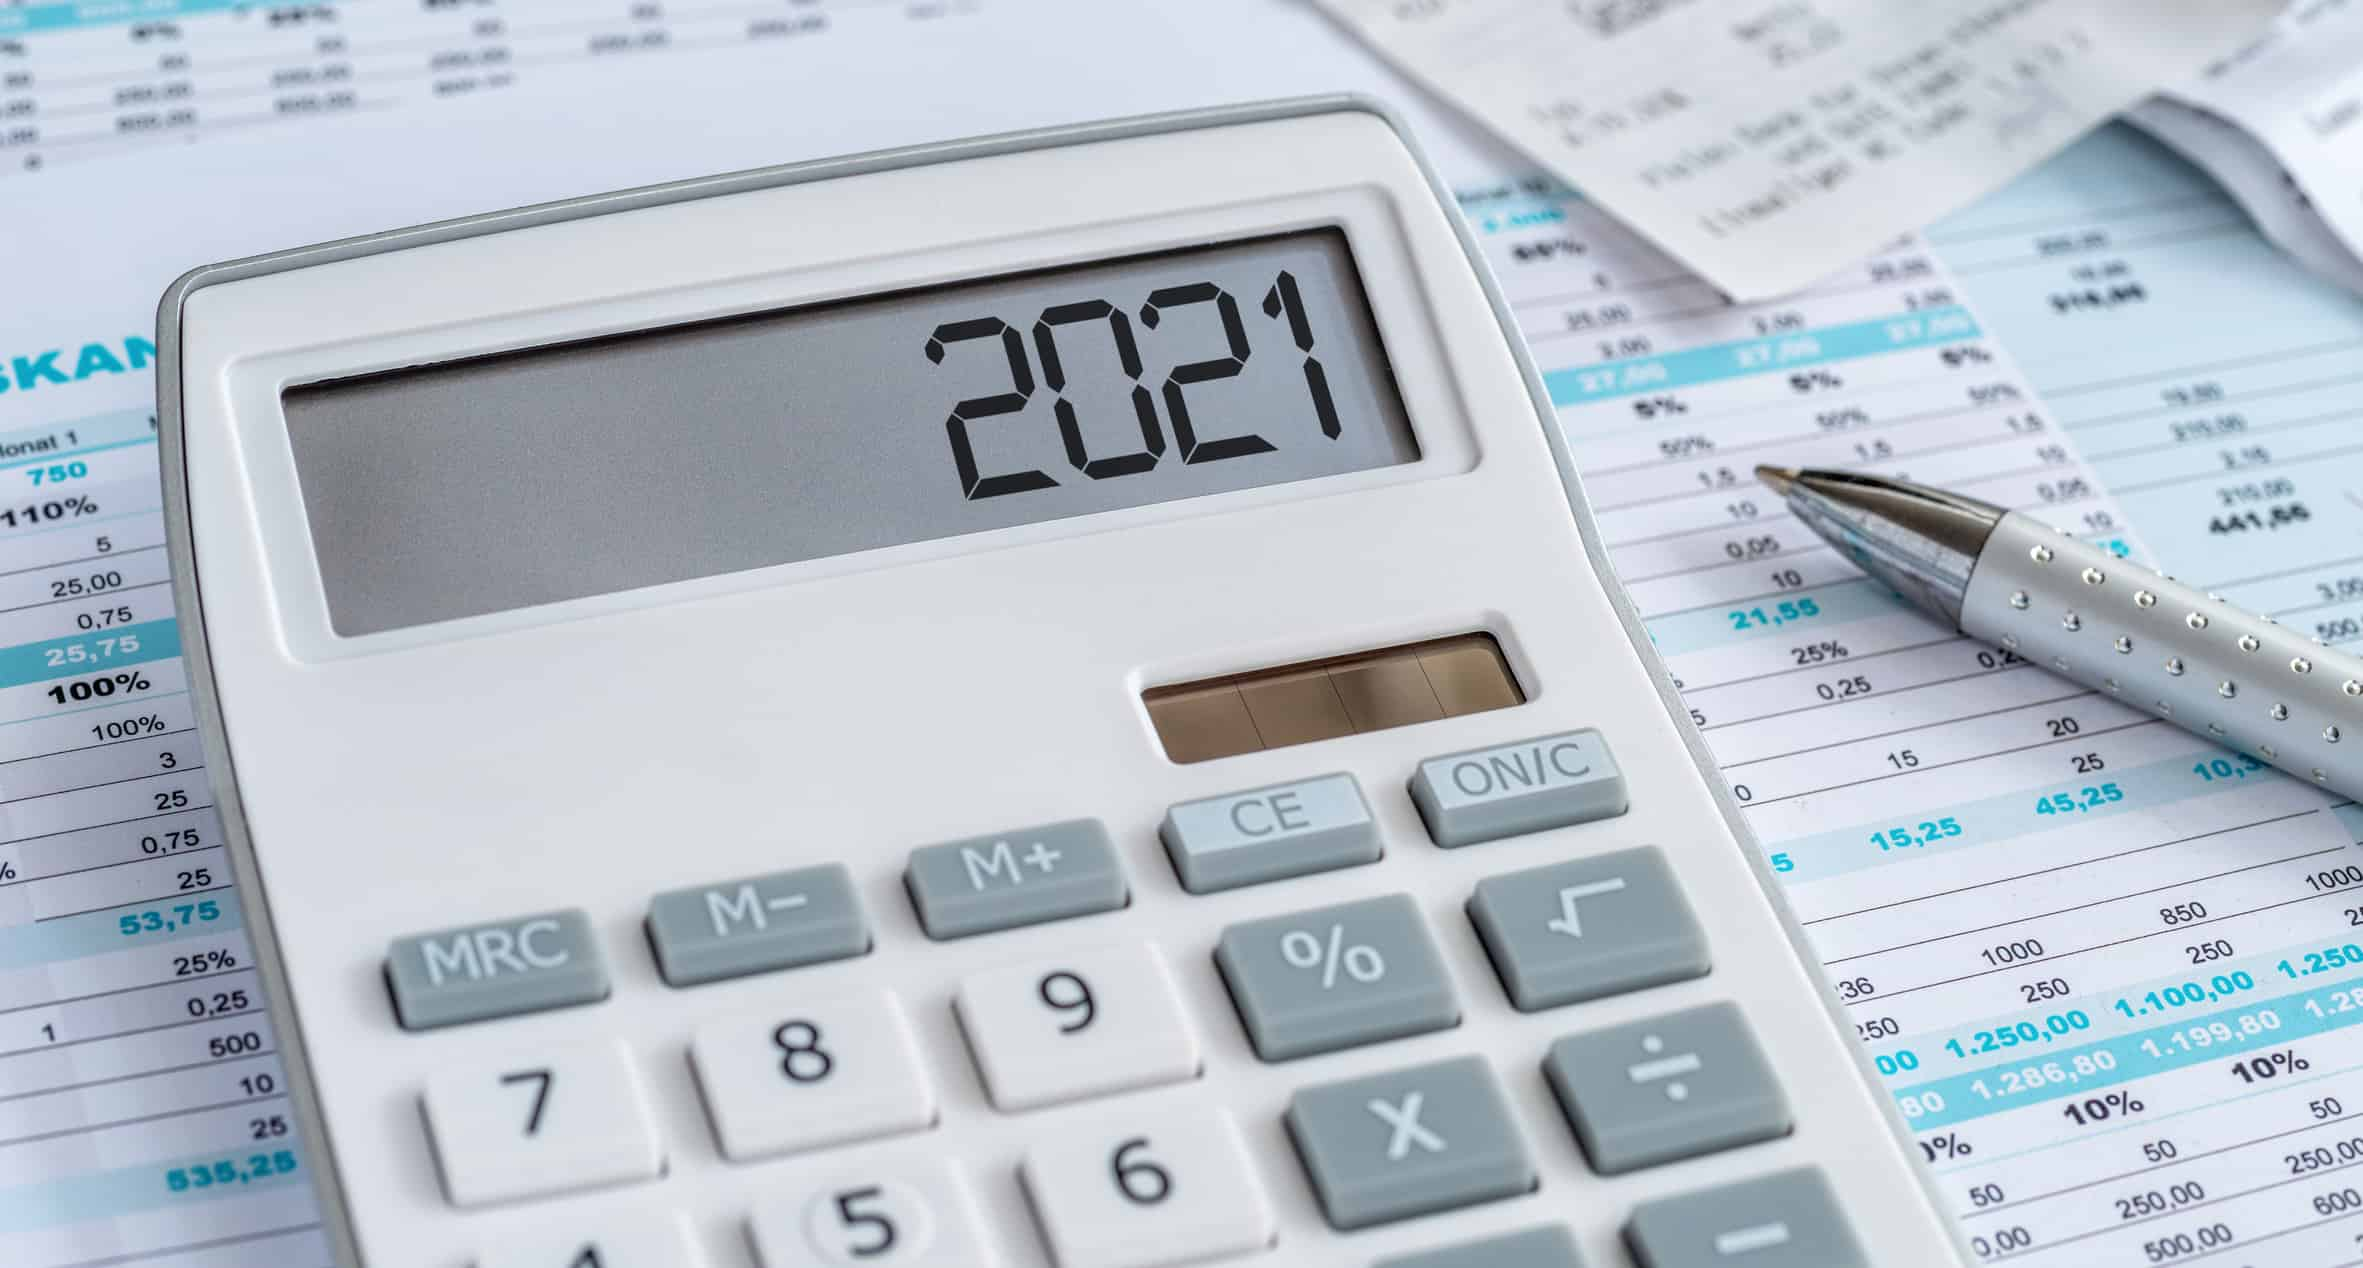 2021 Calculator on financial statements